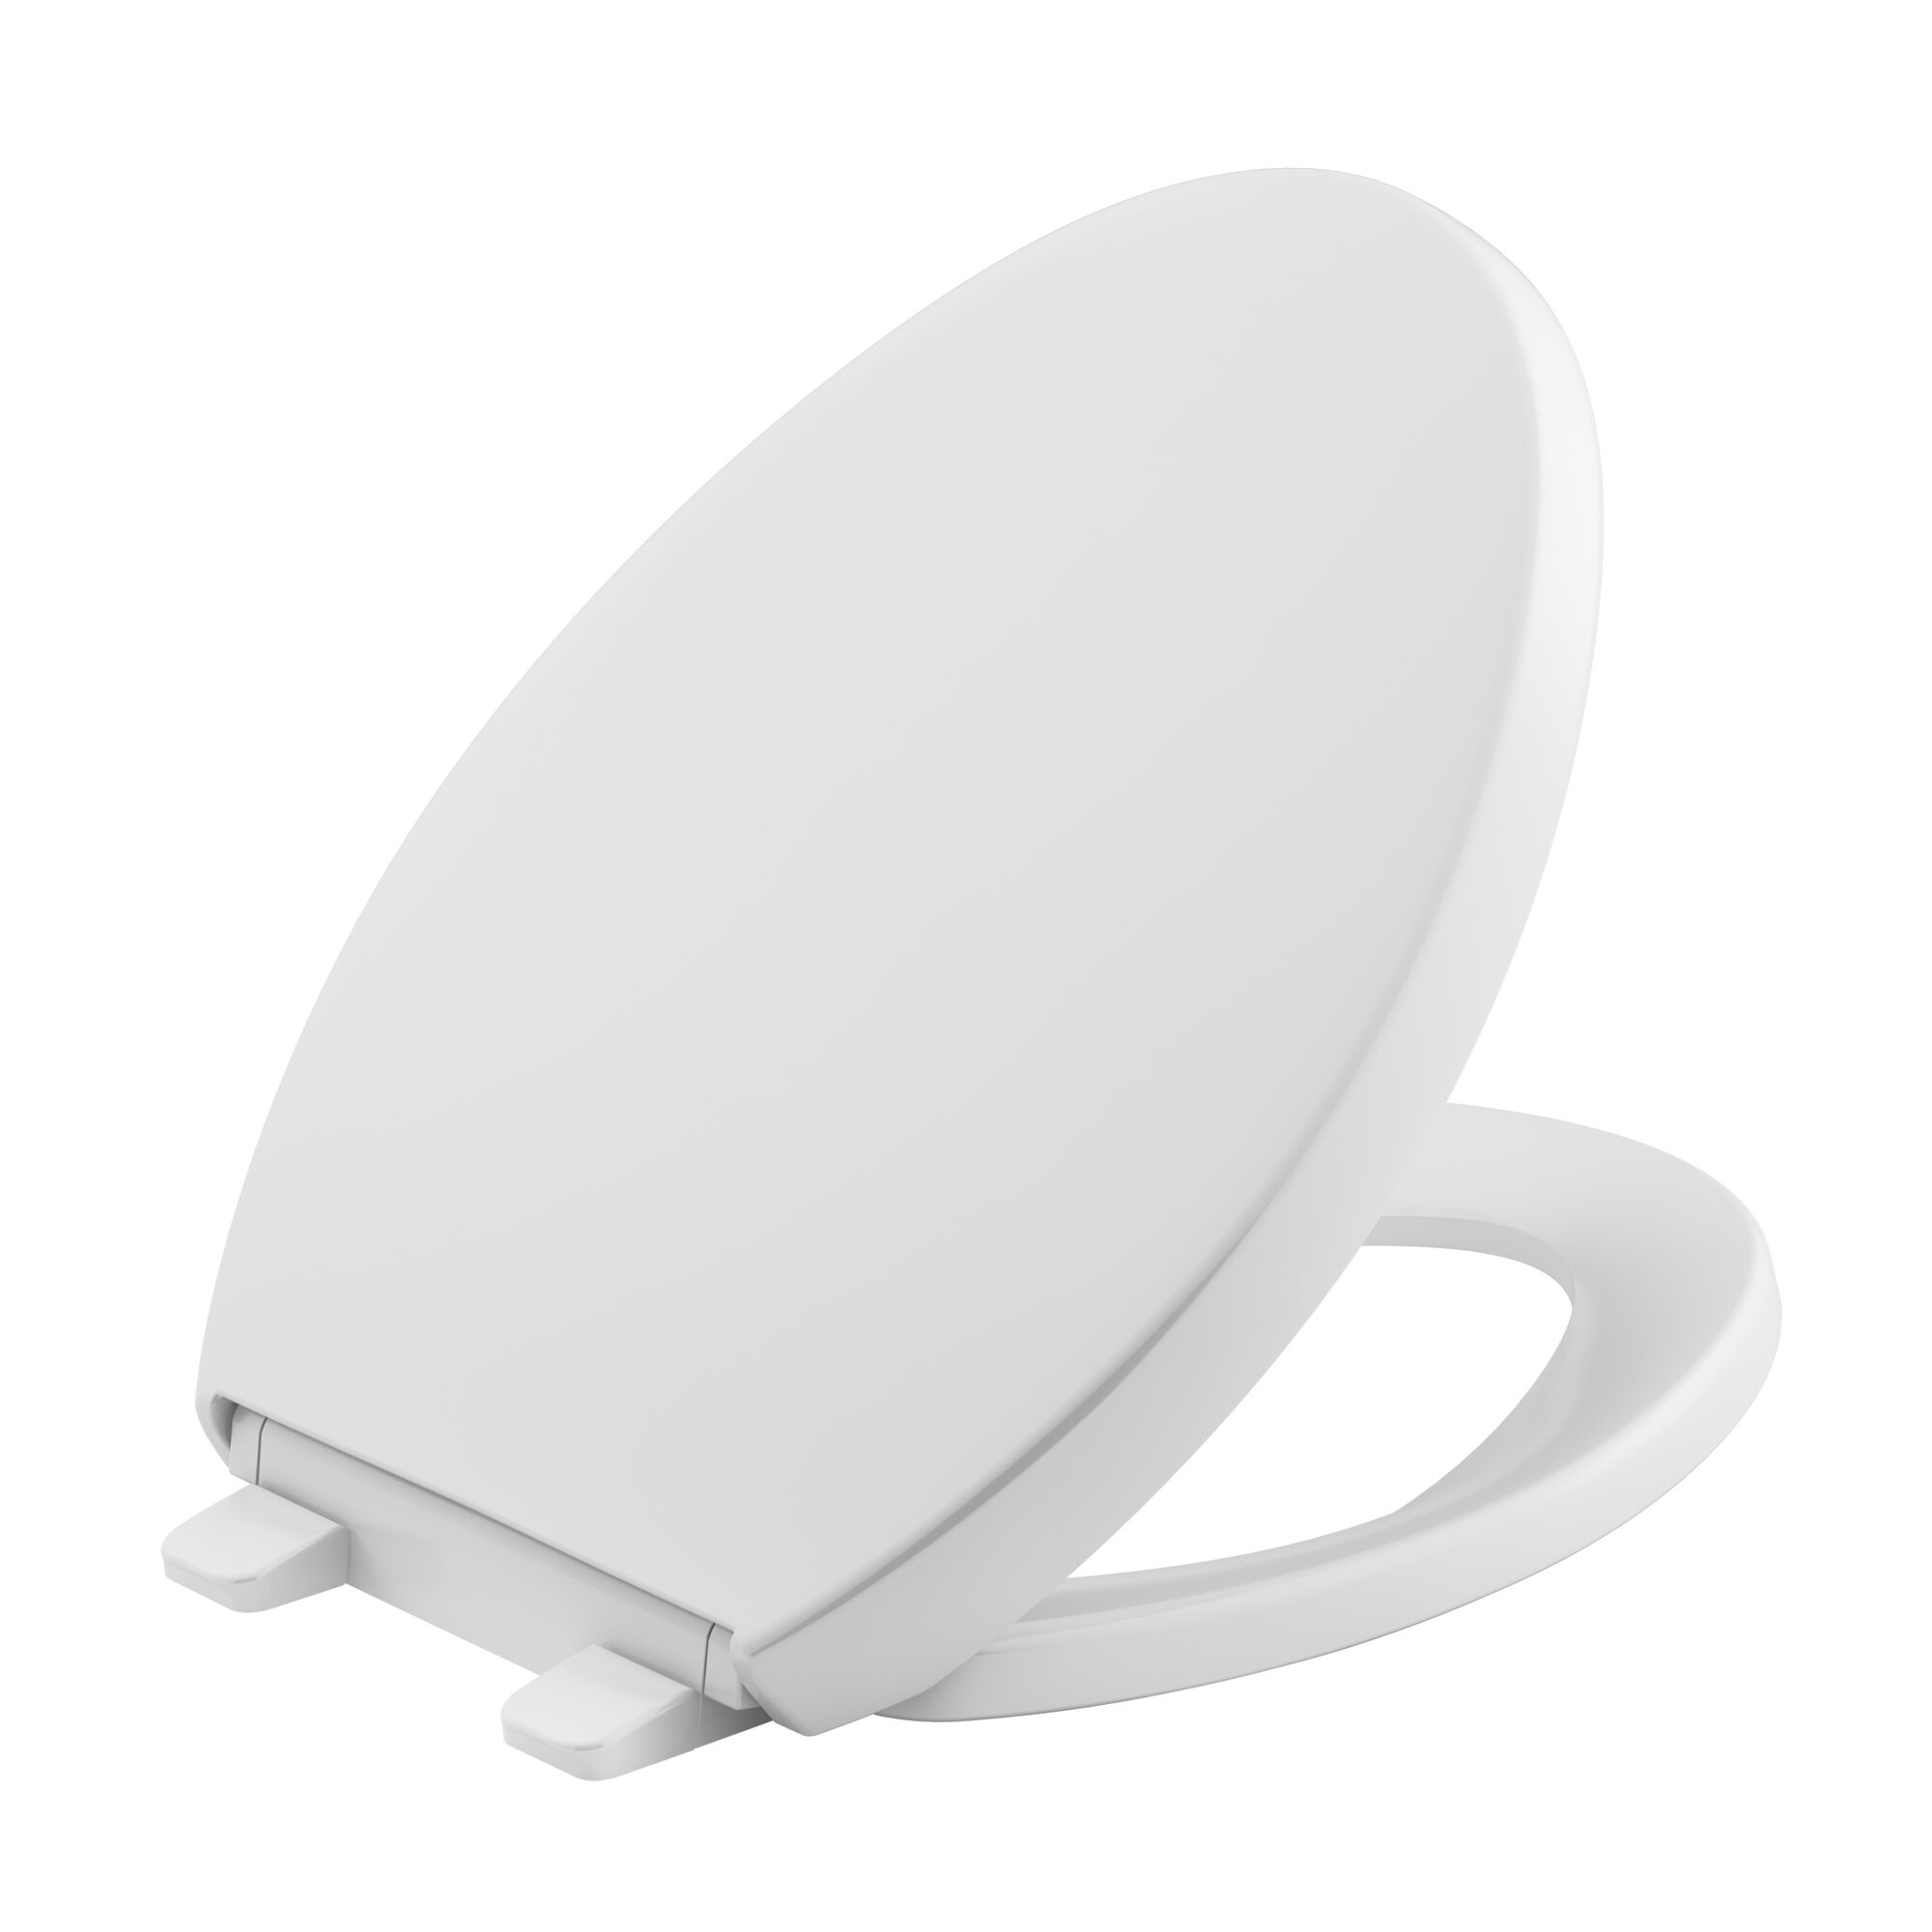 reveal quietclose with griptight elongated toilet seat